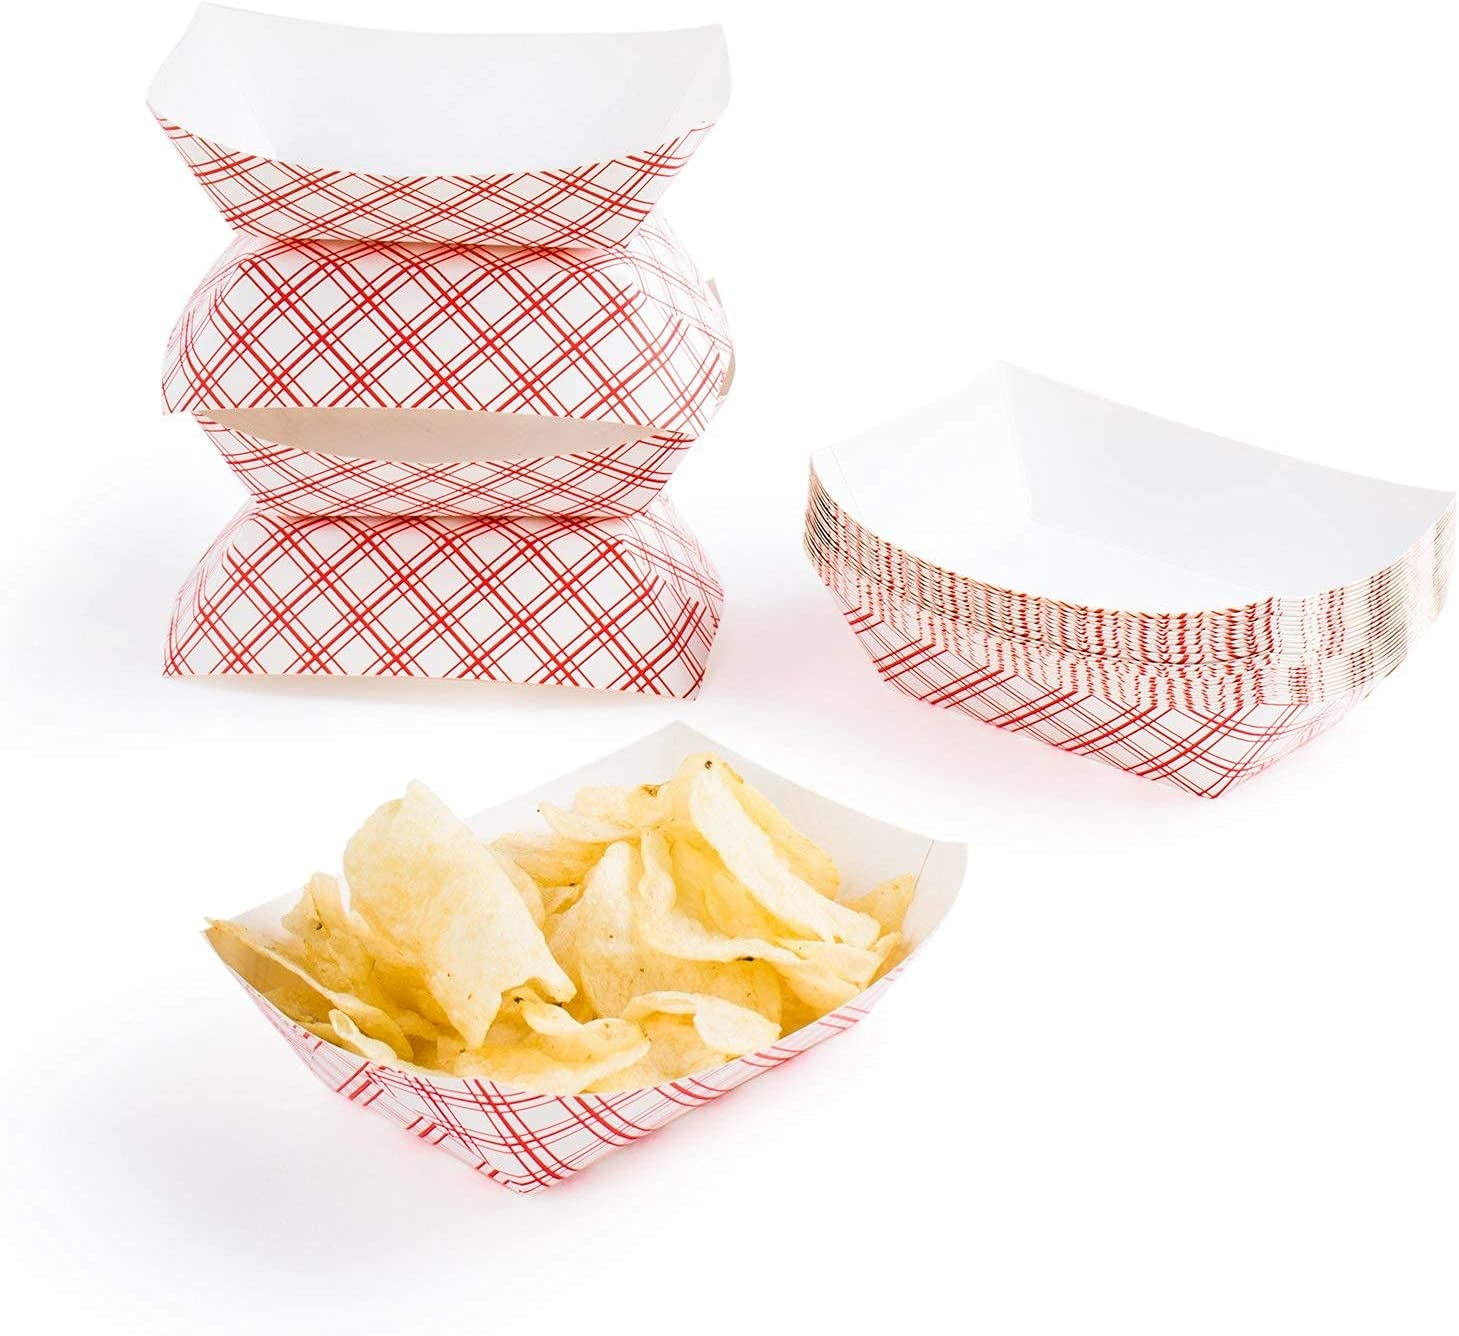 2 Lb. Disposable Paper Food Tray 50 ct. by JDRD